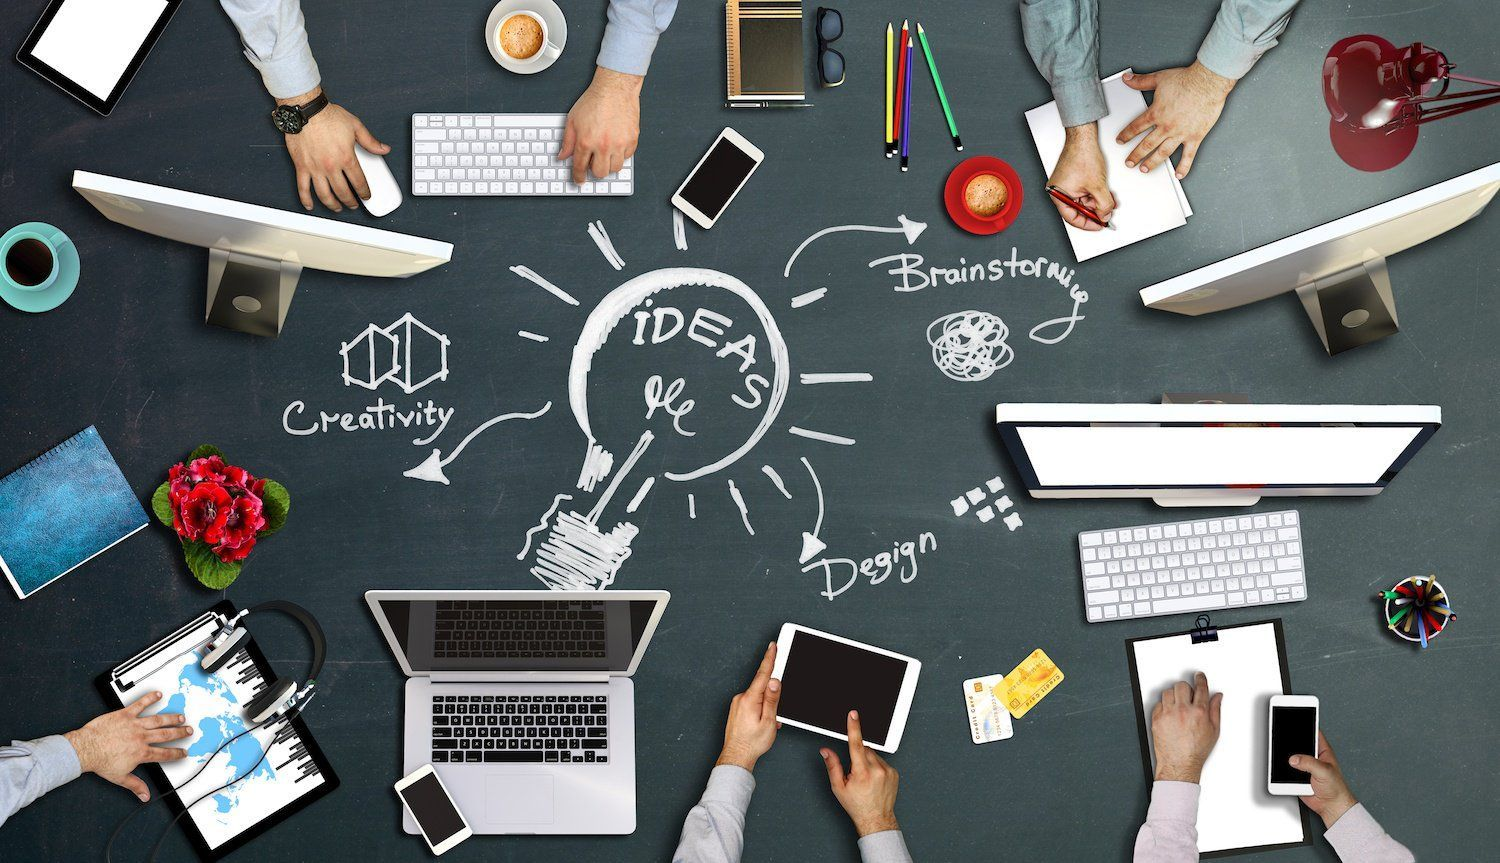 The Ultimate Guide to UX Design #userexperience Learn about the key design principles and tools used by the pros and how a great user experience can positively impact your business #userexperience